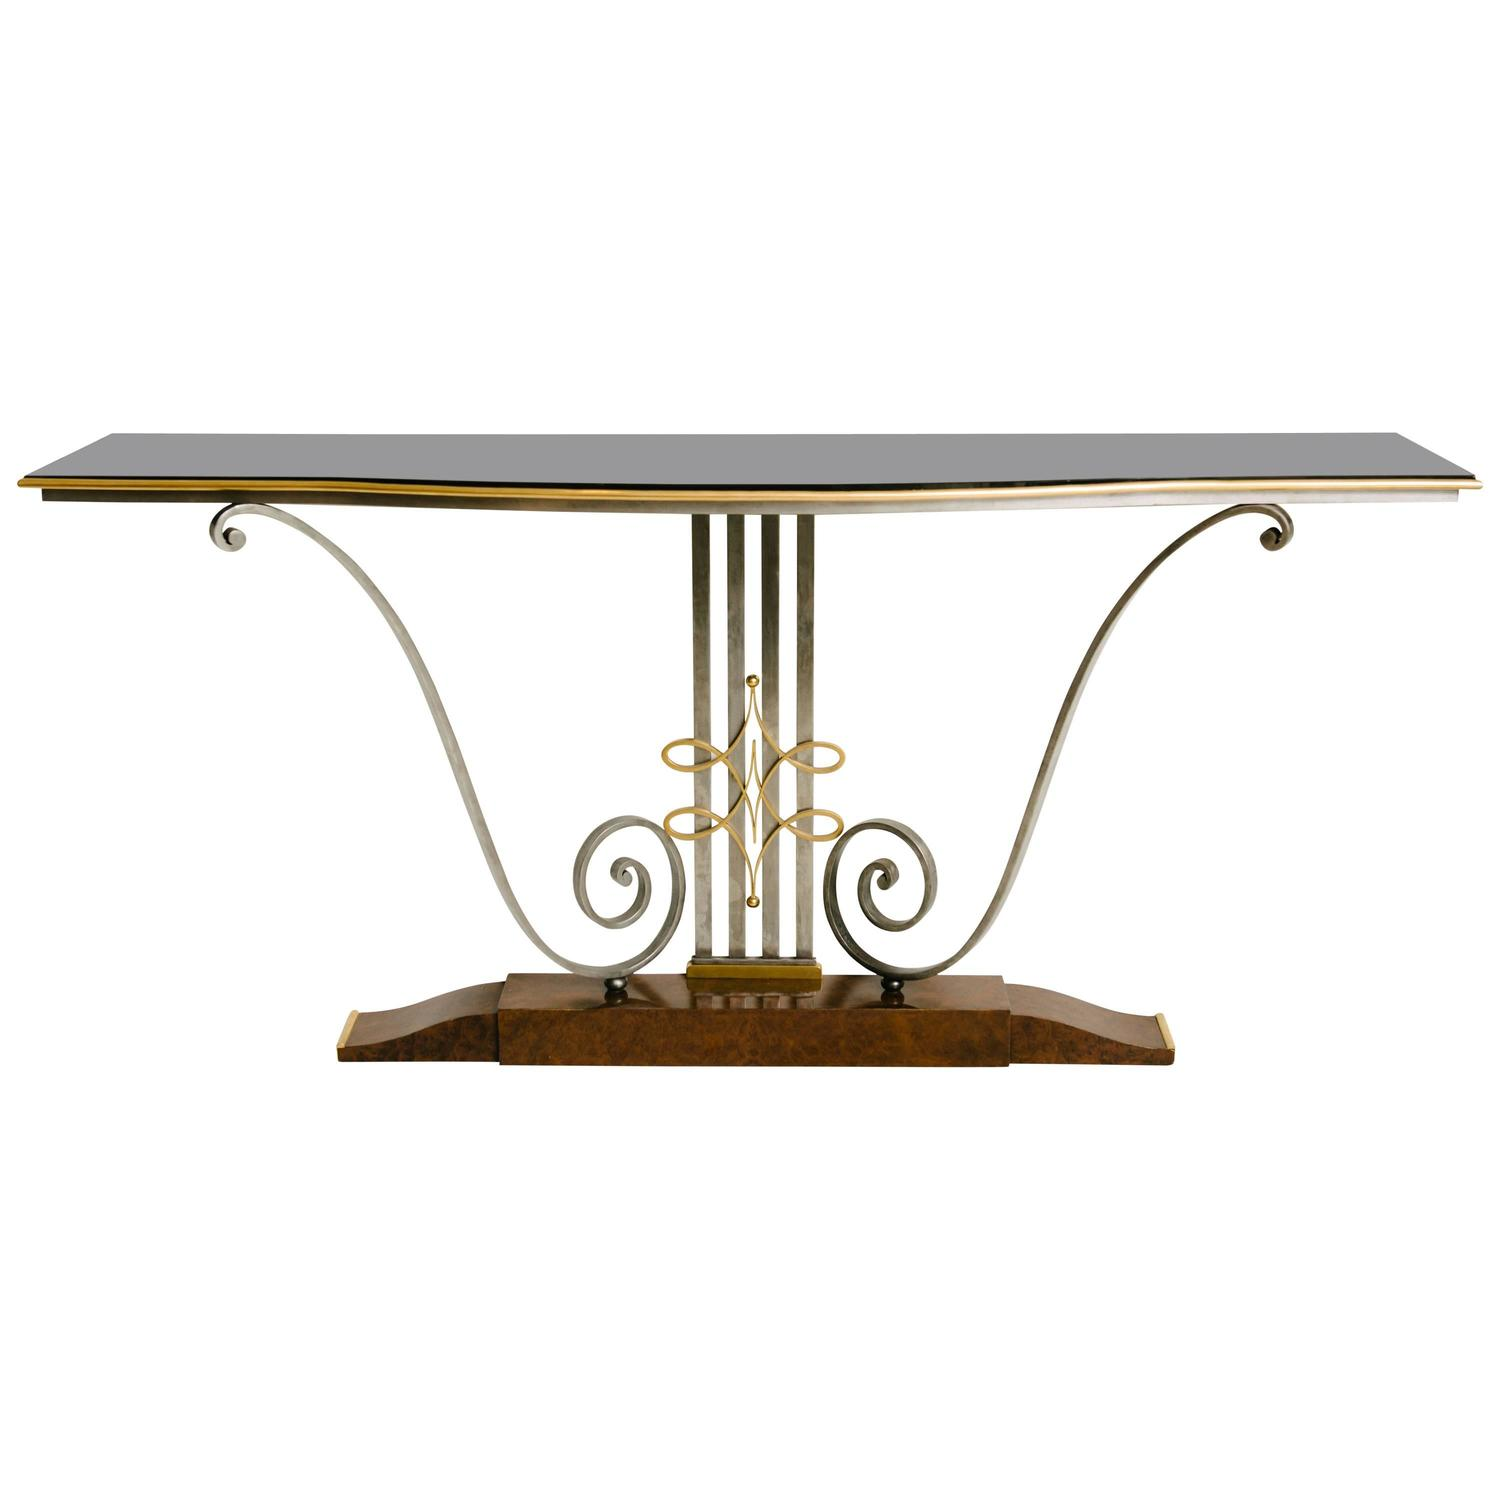 french art deco console table by raymond subes at 1stdibs. Black Bedroom Furniture Sets. Home Design Ideas